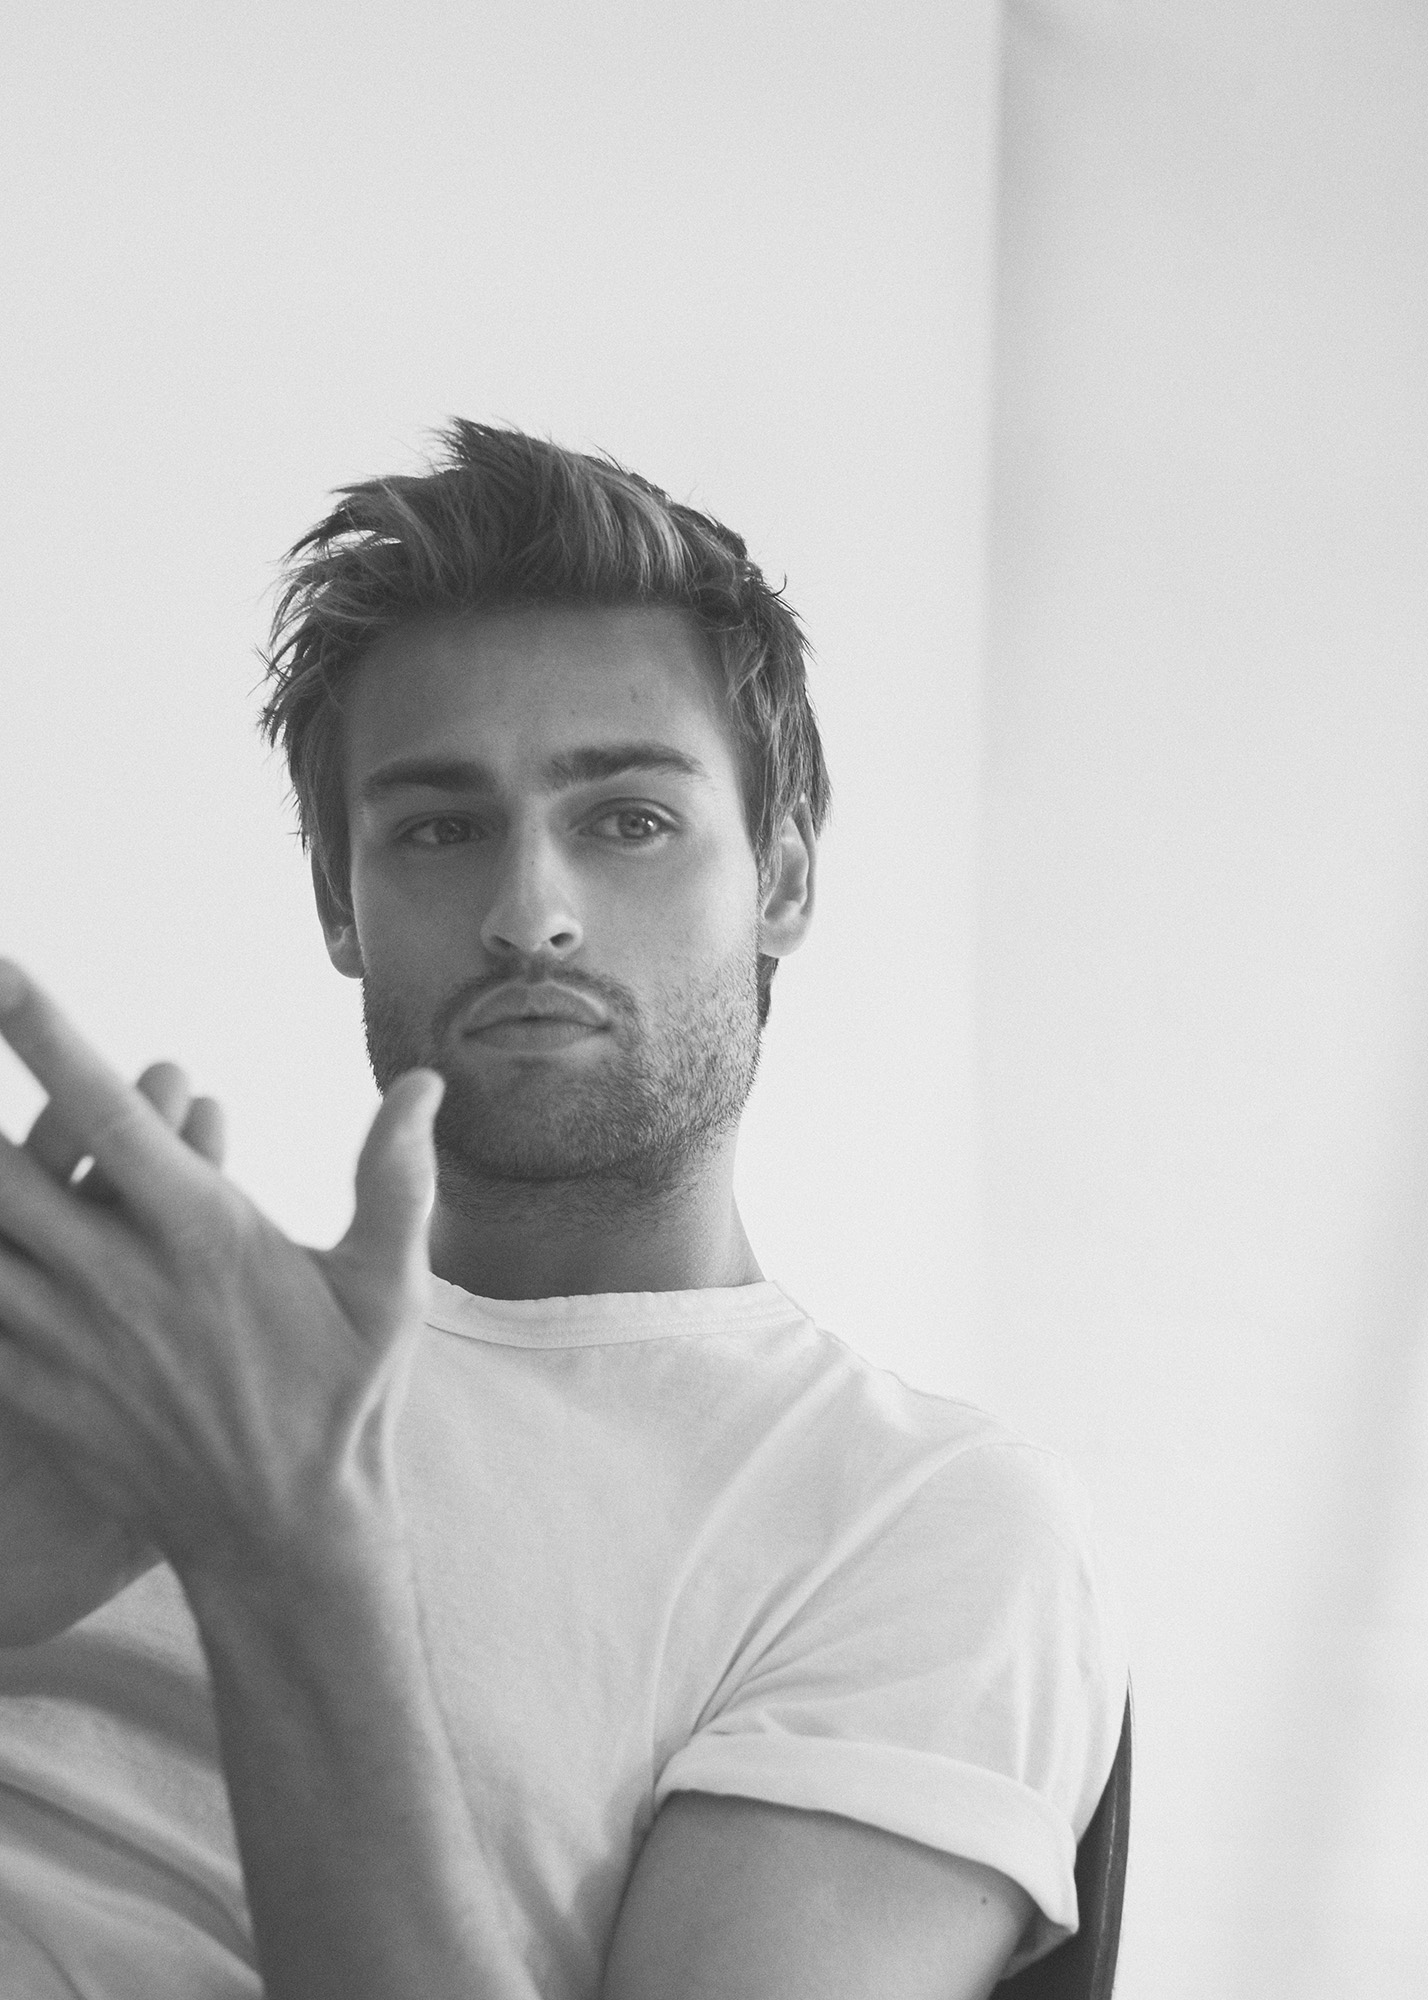 20170804_TLM_DOUGLAS_BOOTH_Card_7551.jpg